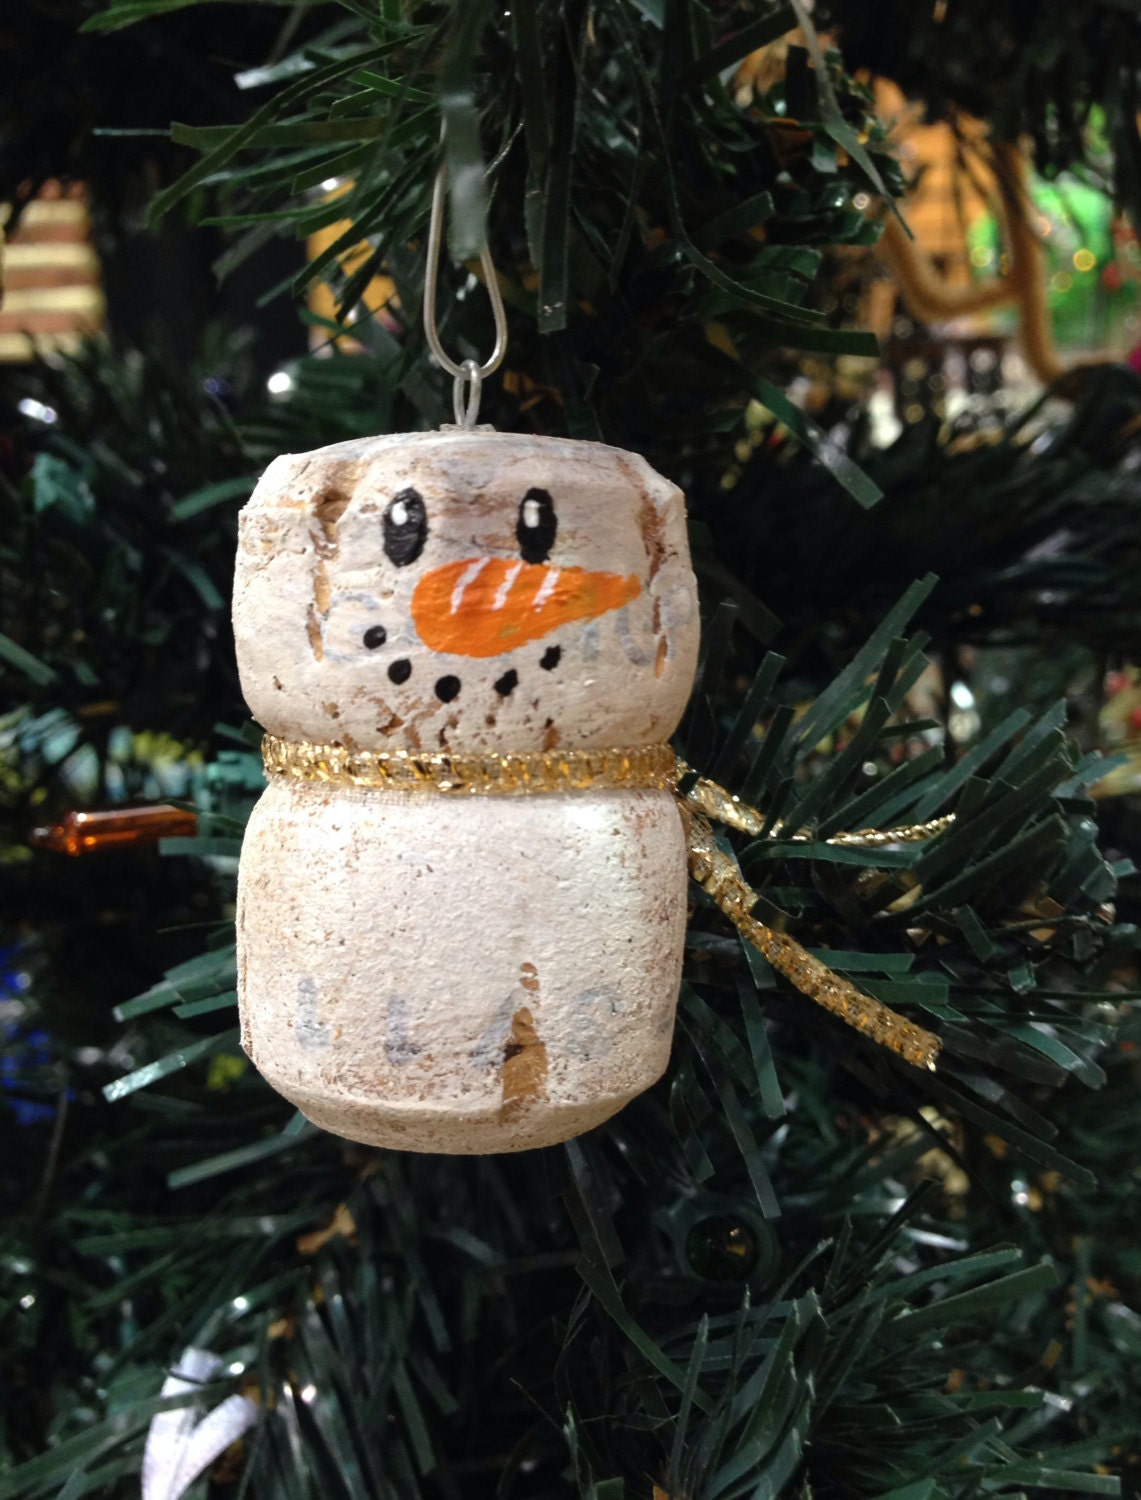 snowman ornament made from recycled corks